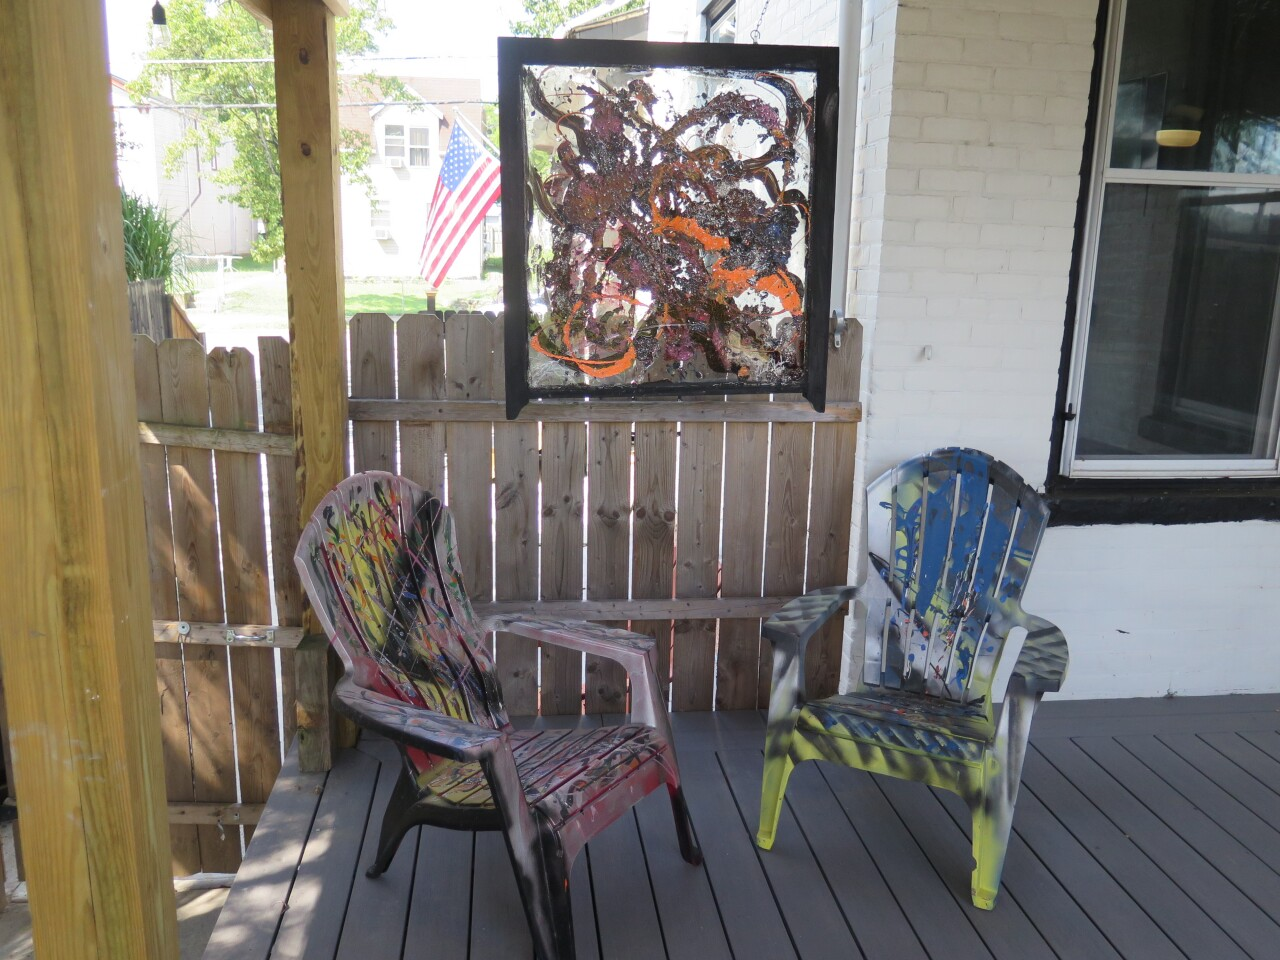 This photo shows the first window that Nina Edwards painted along with two Adirondack chairs she painted. The window and chairs are painted with abstract designs in bright colors.